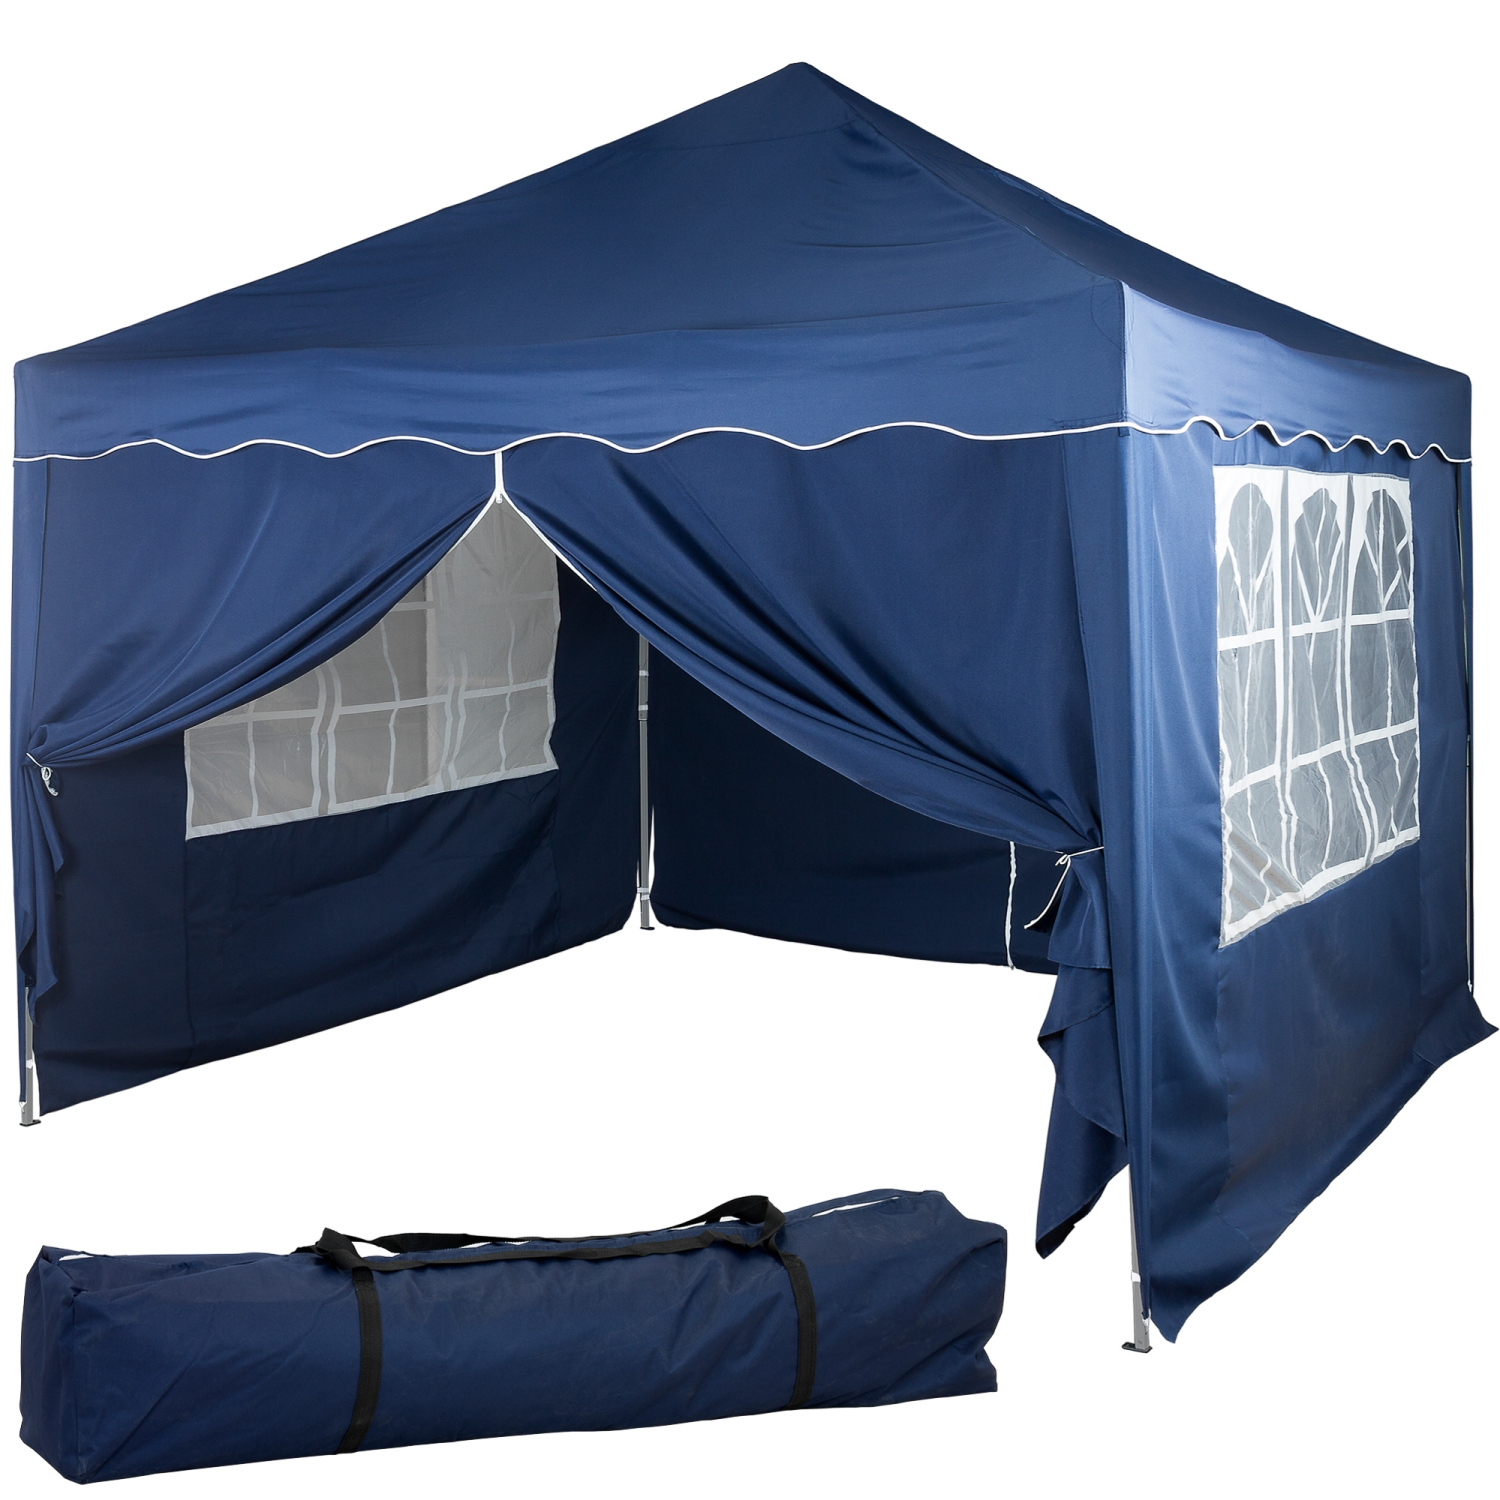 klapp falt pavillon 3x3m wasserdicht blau party zelt gartenzelt pavillion ebay. Black Bedroom Furniture Sets. Home Design Ideas